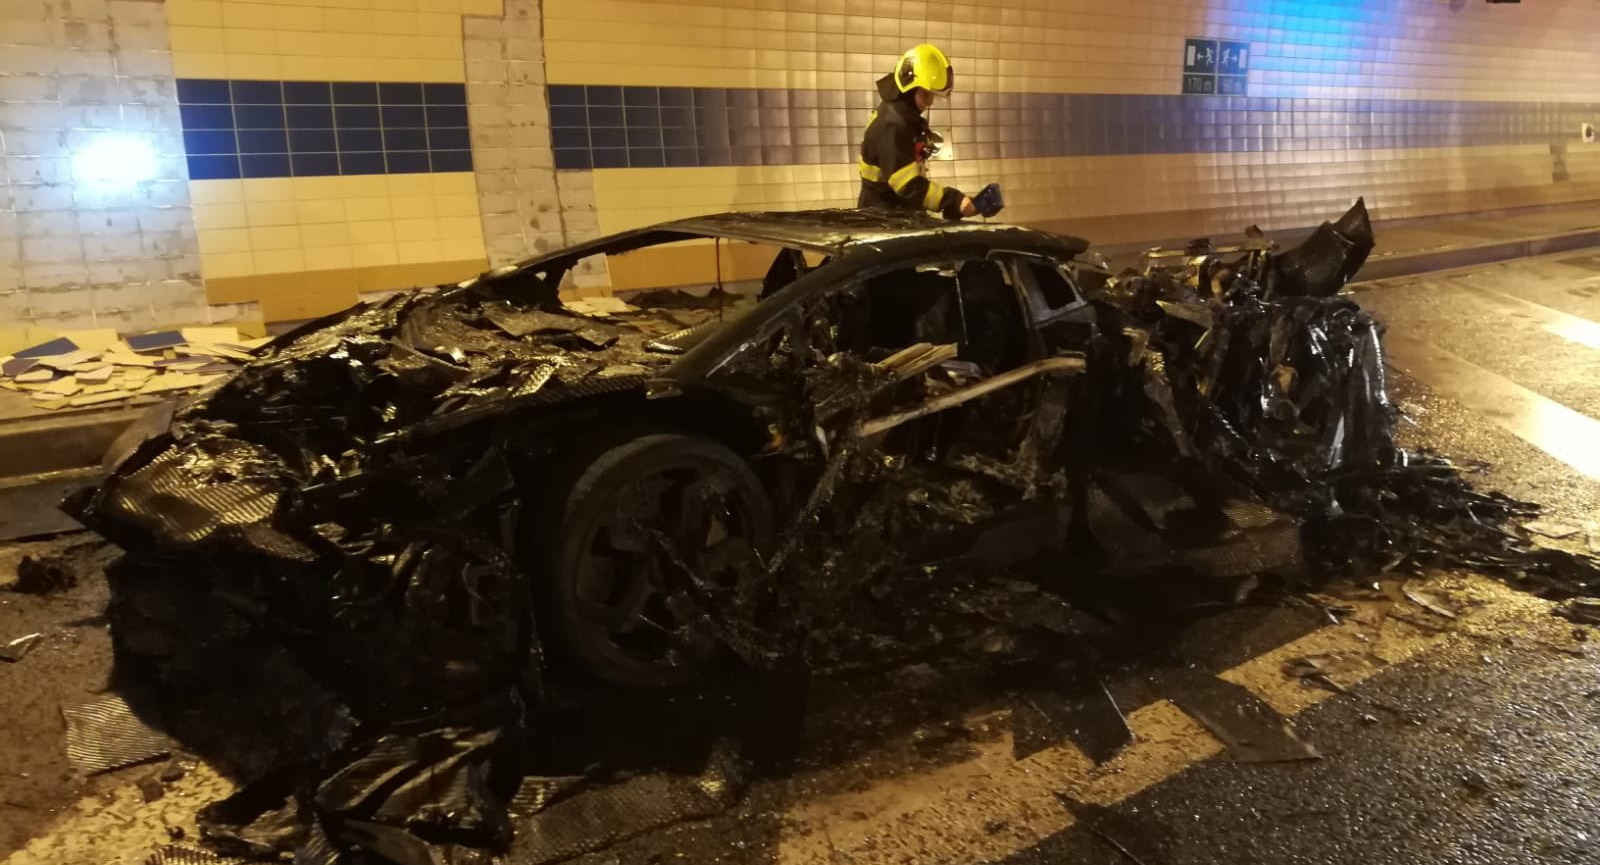 Pics – An ultra-rare customized Lamborghini Aventador with 1250 hp got burnt down to a crisp in a Prague tunnel